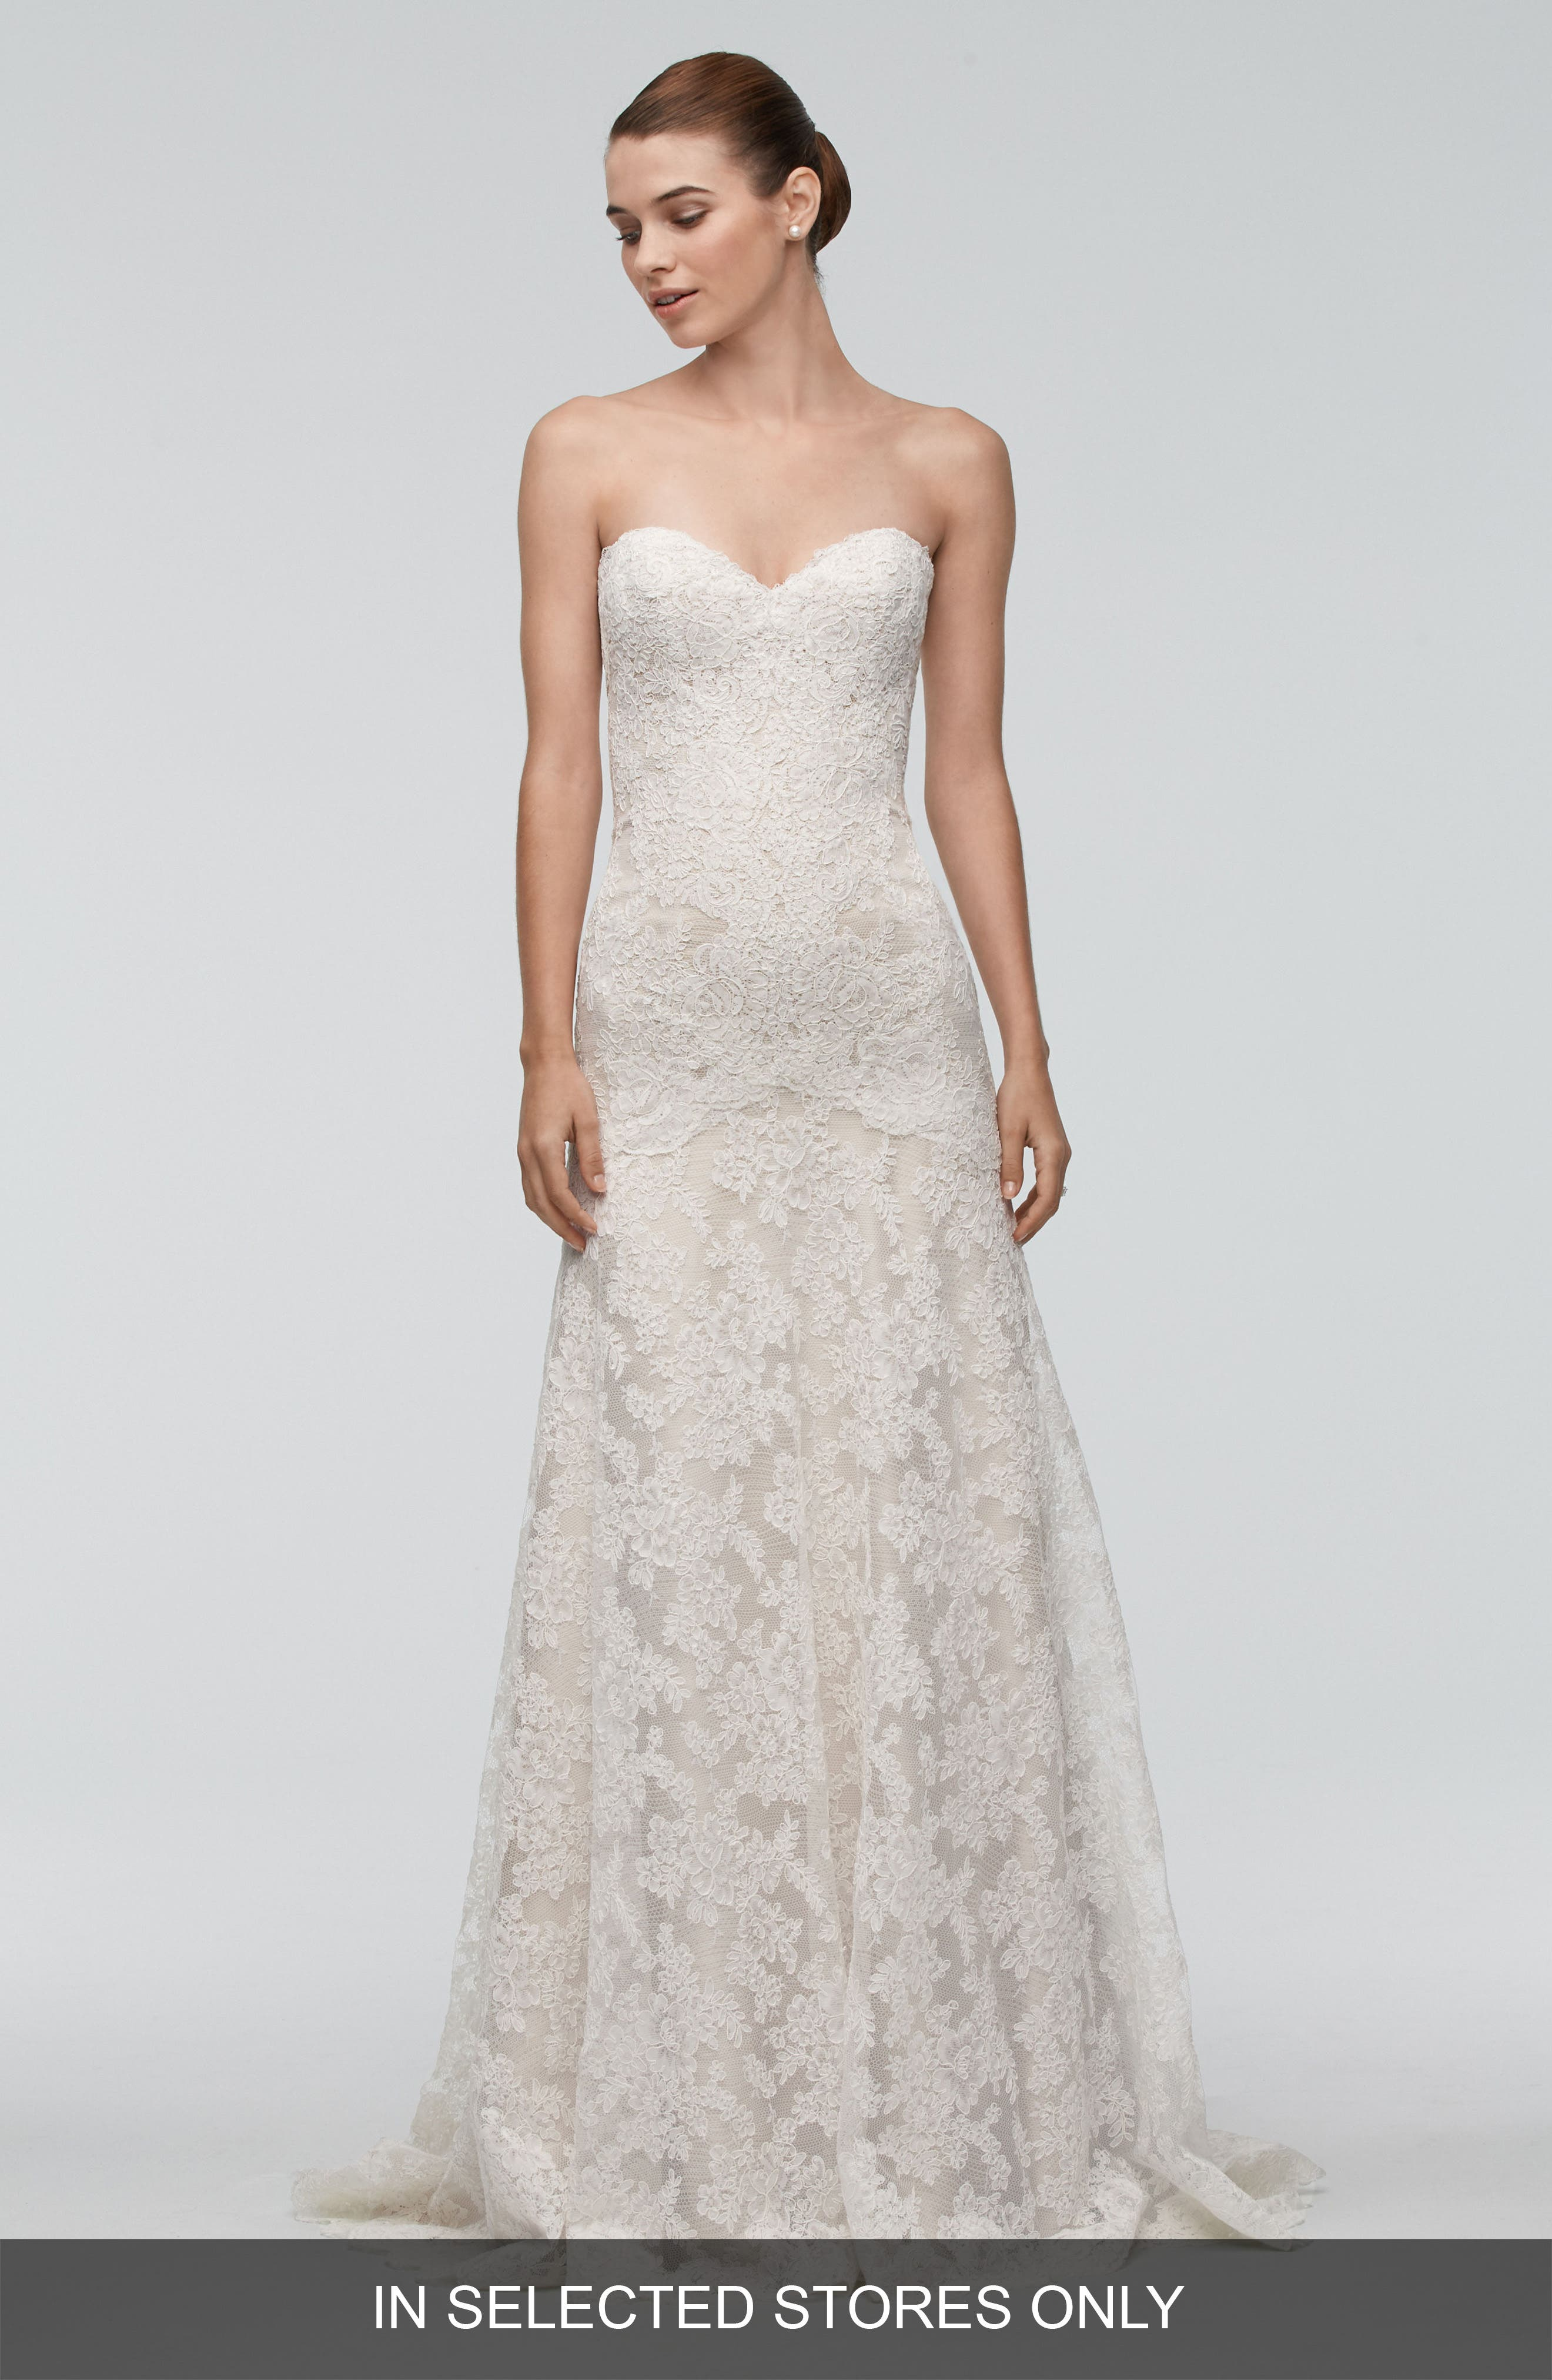 Oma Lace Trumpet Gown,                             Main thumbnail 1, color,                             900